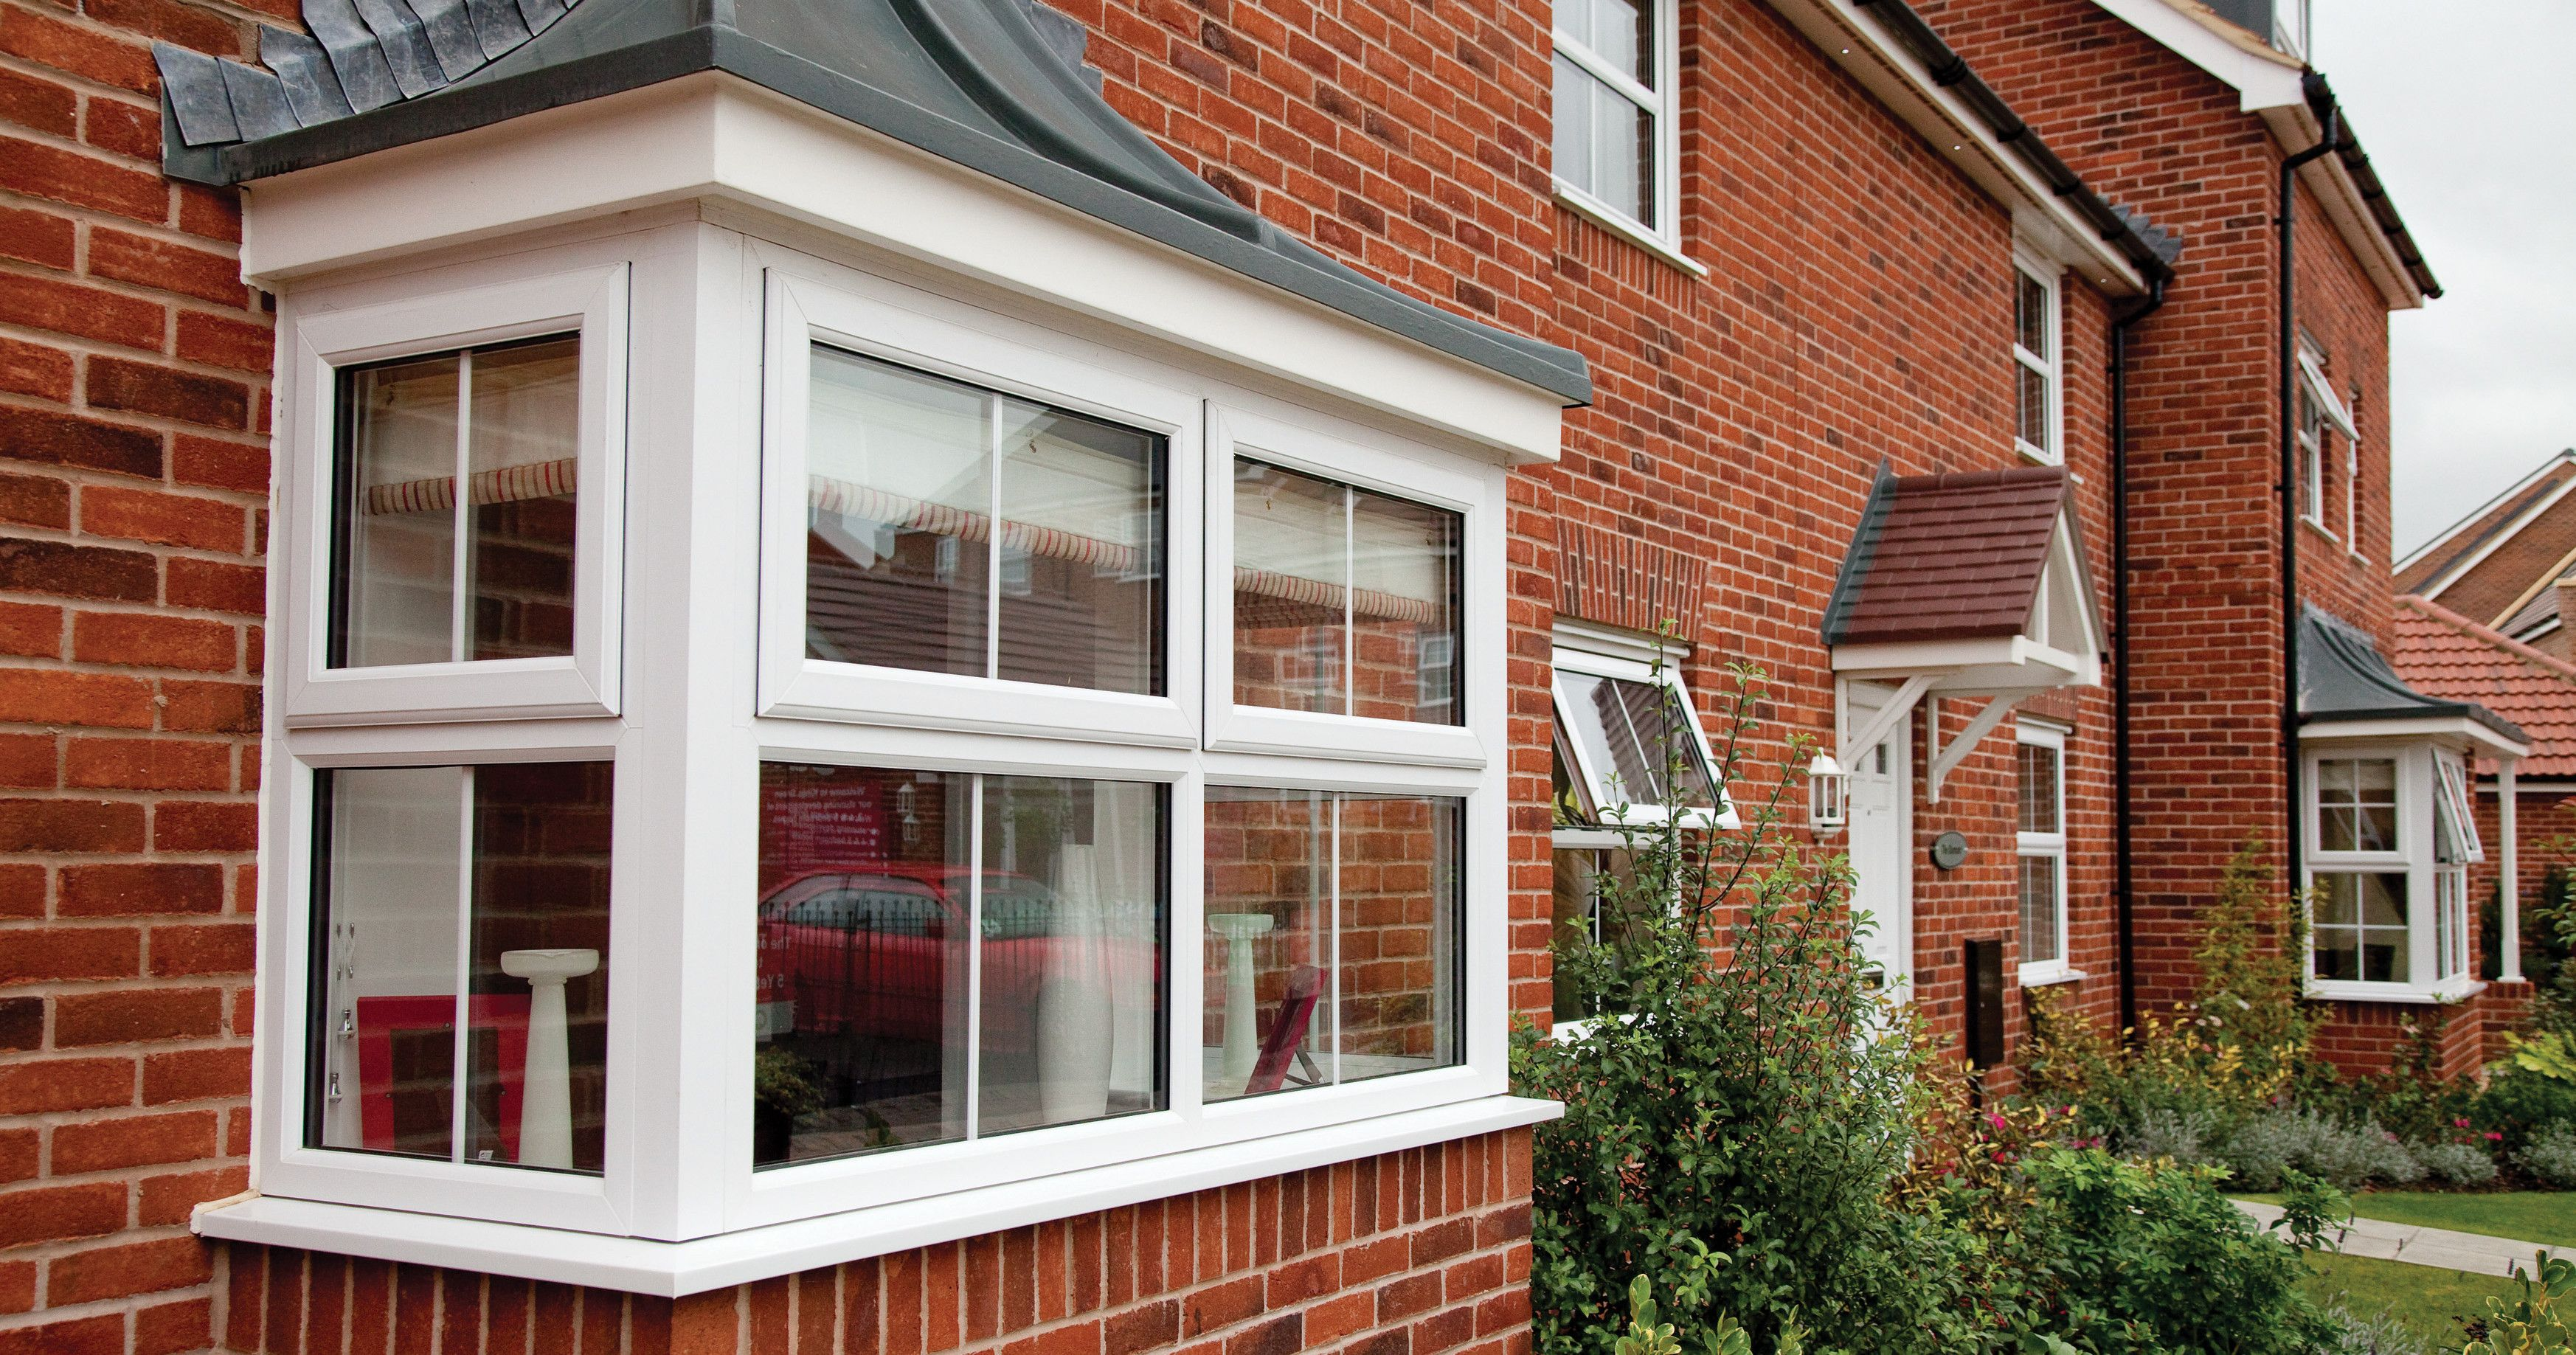 Secure by design windows the skylight double glazing and for Box bay windows for sale